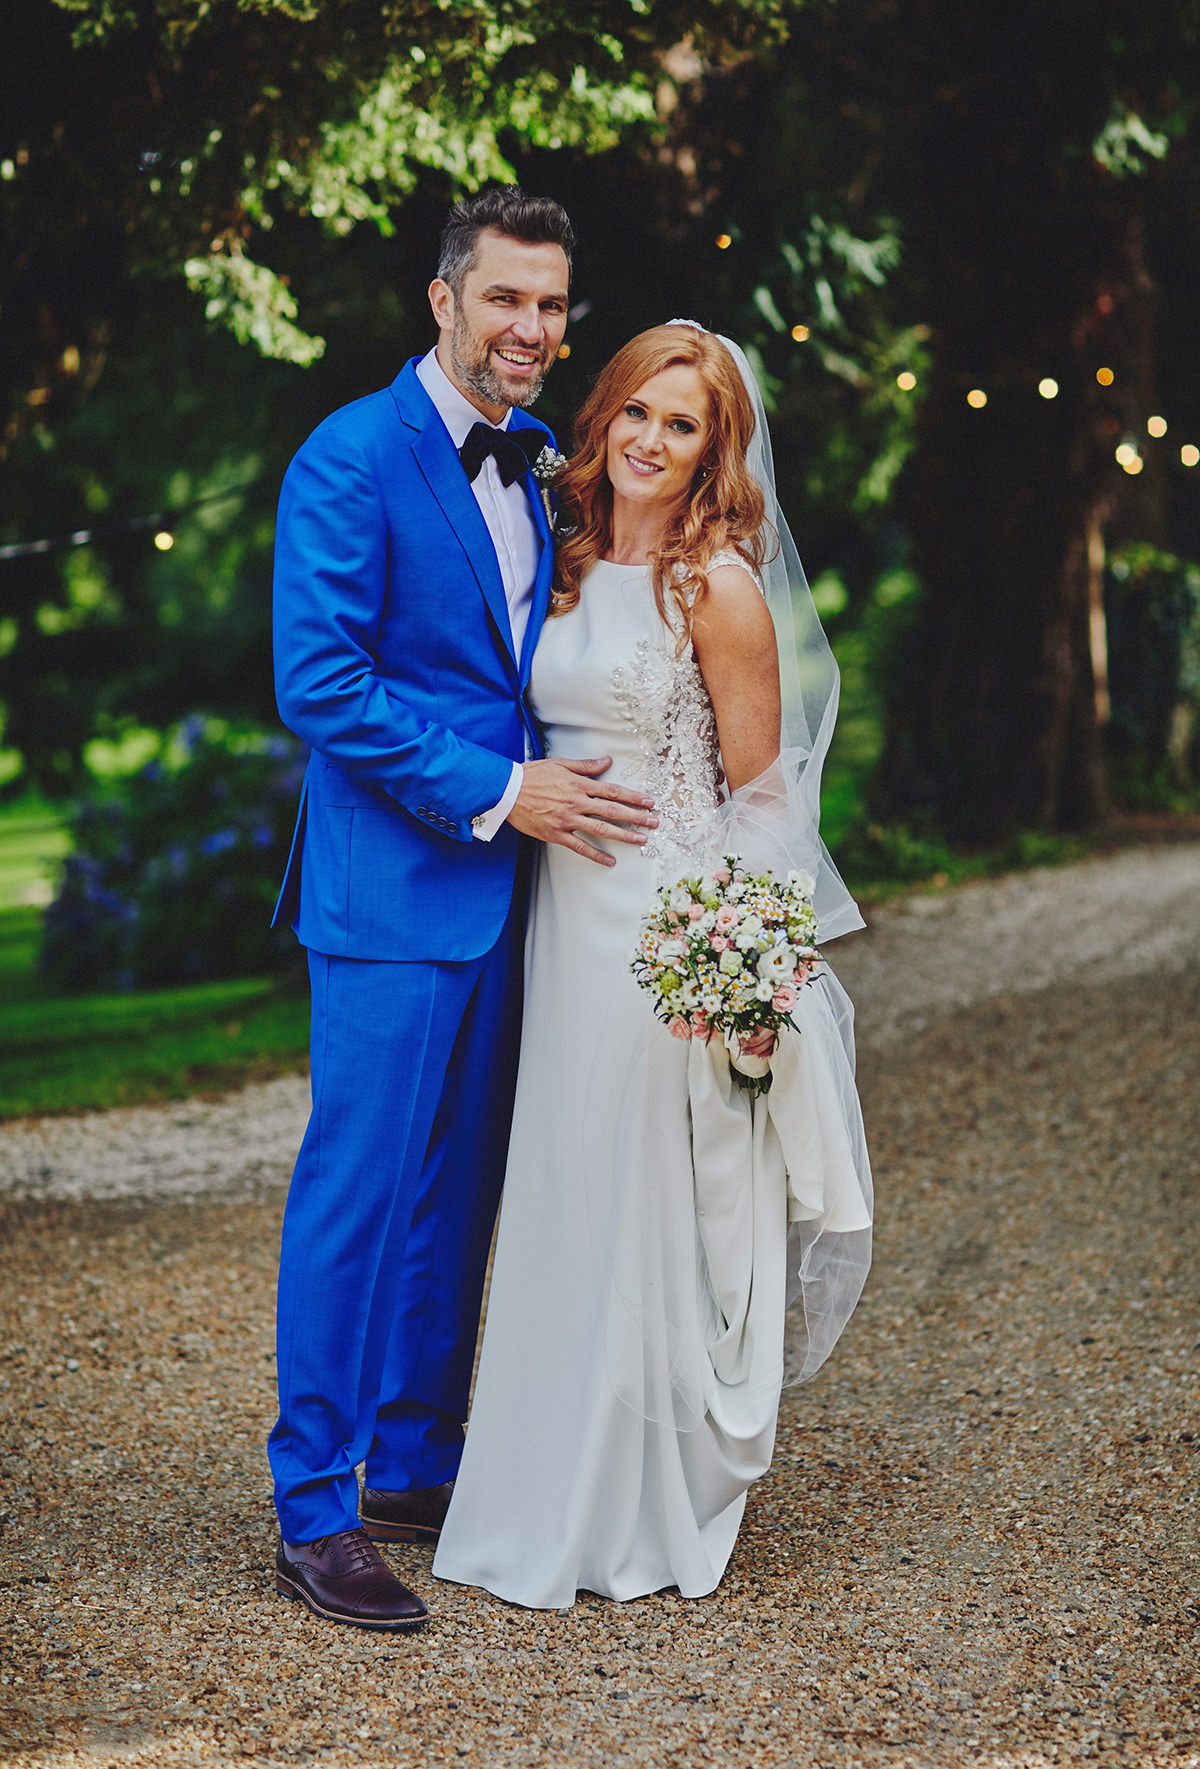 Wedding at Ballybeg House123 - Ballybeg House Wedding, Co. Wicklow | C&D